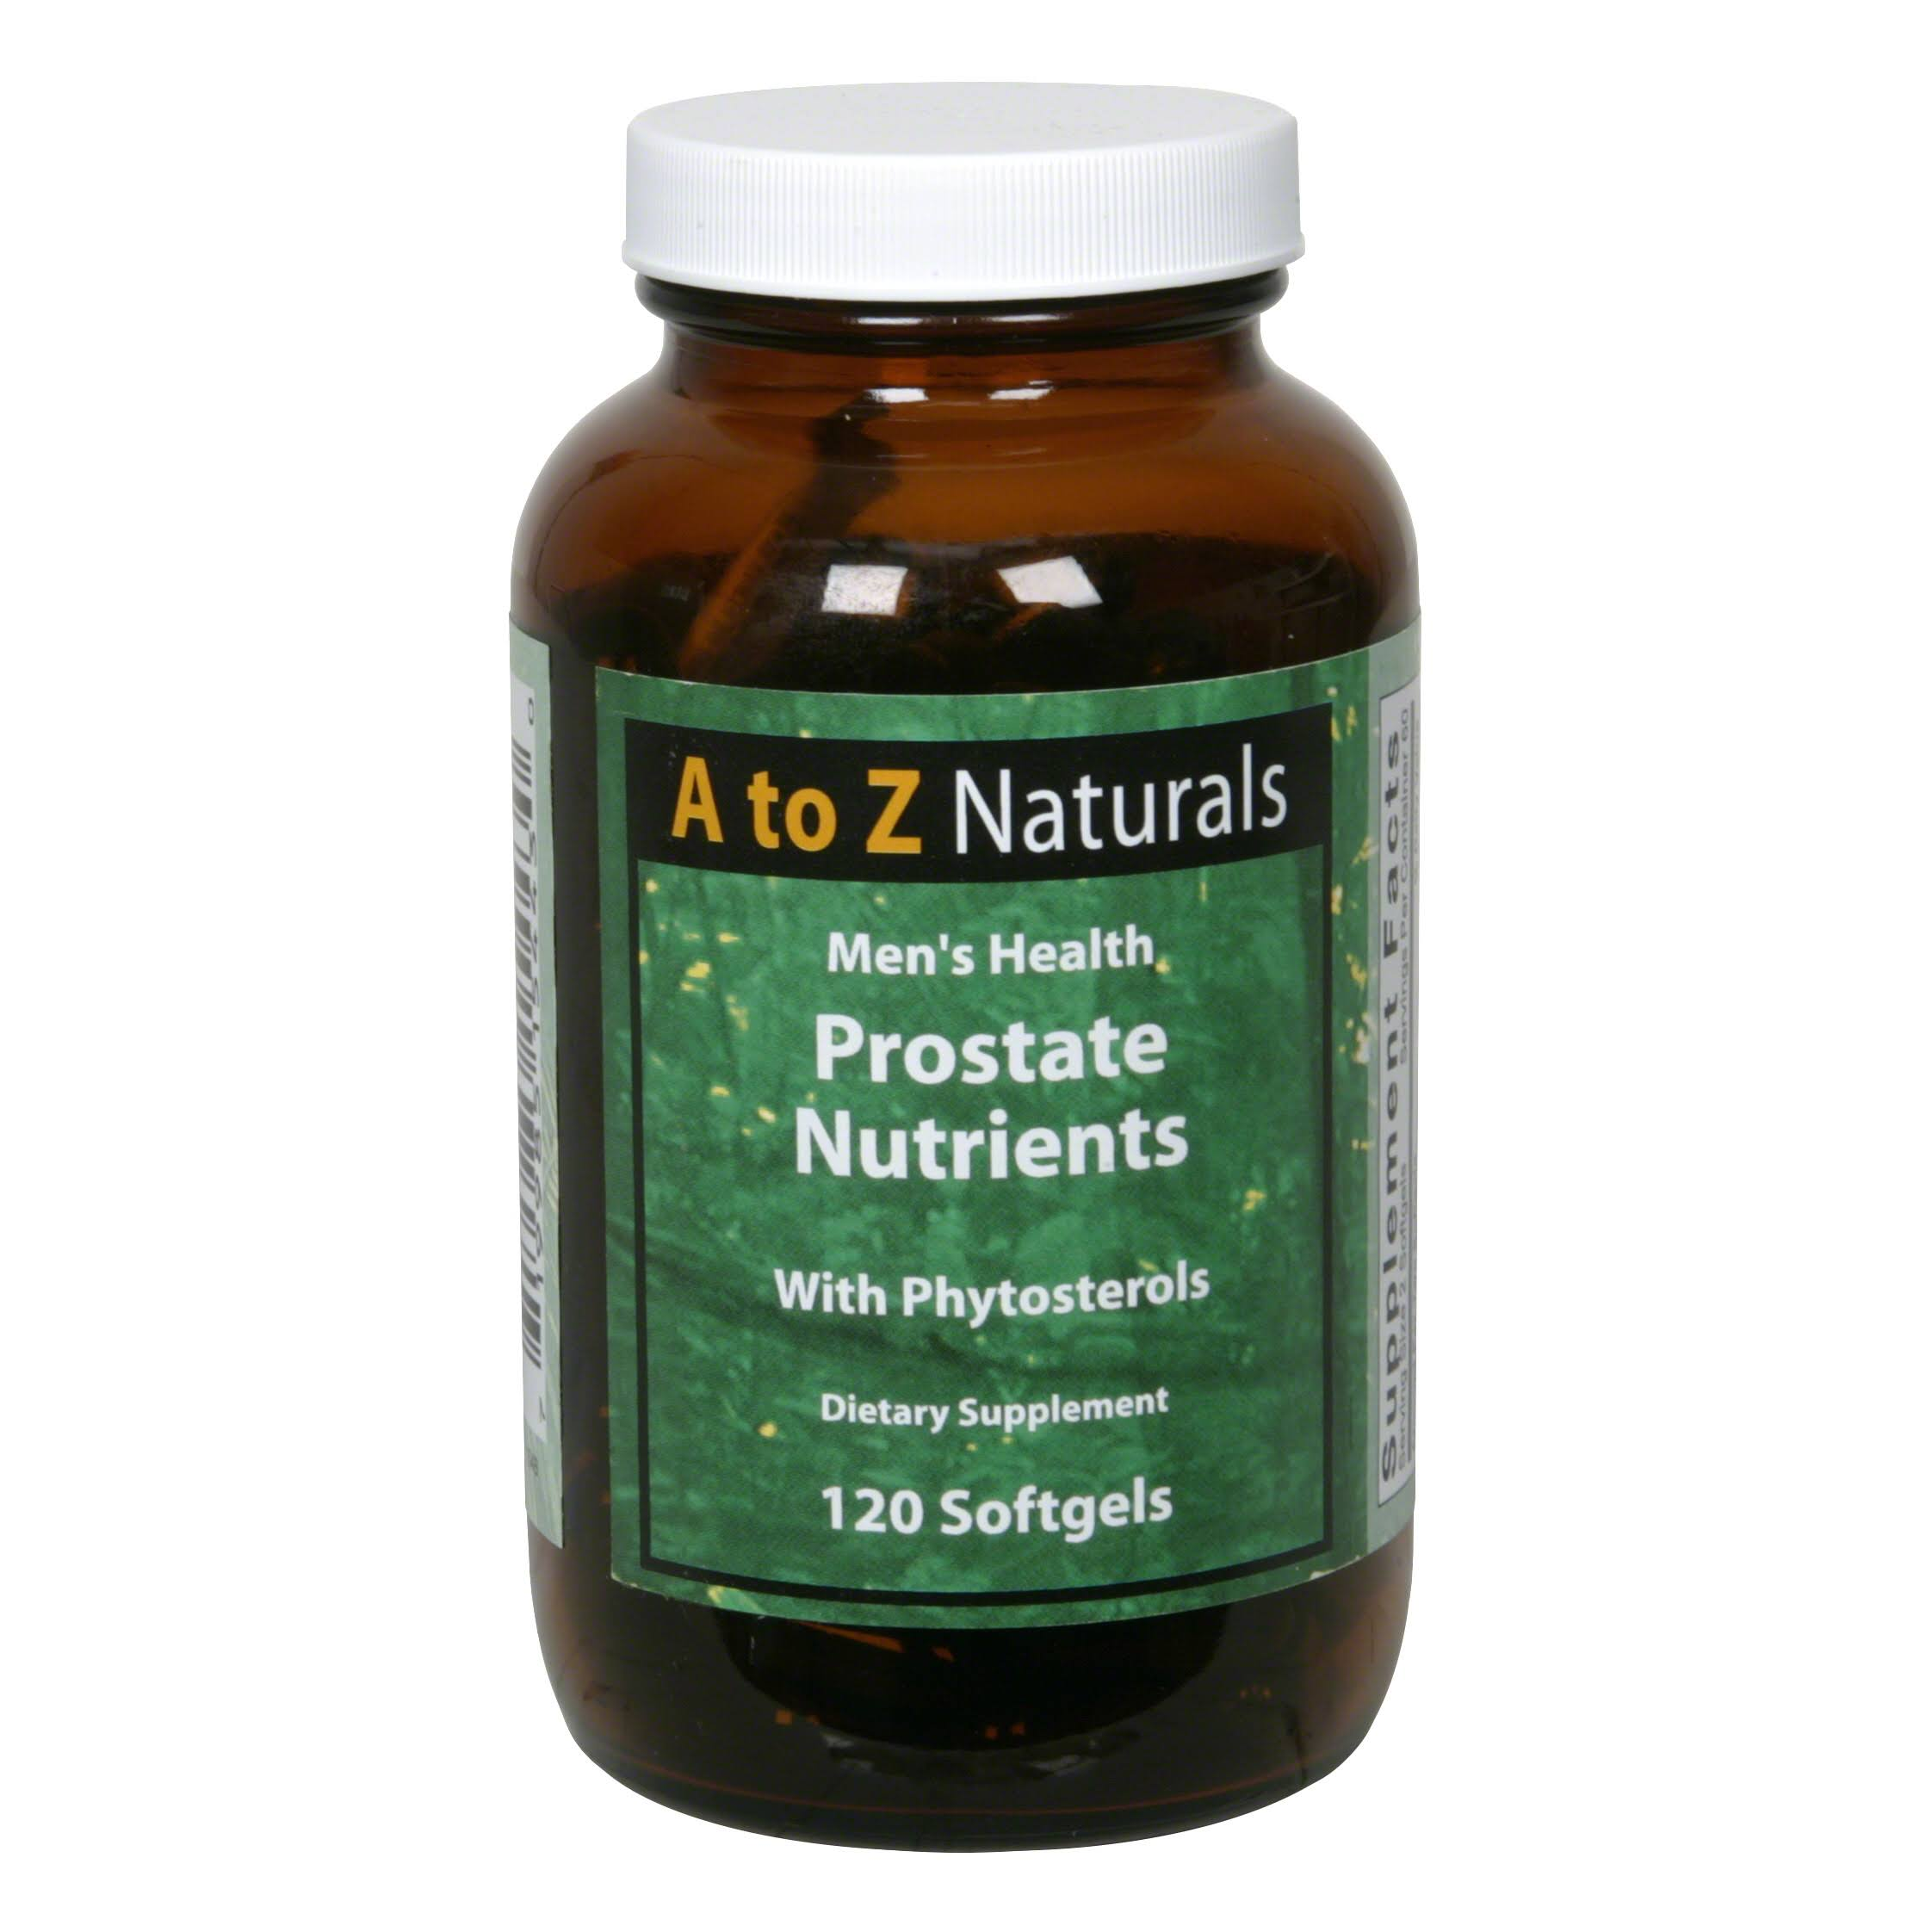 A to Z Naturals Men's Health Prostate Nutrients, with Phytosterols, Softgels - 120 softgels